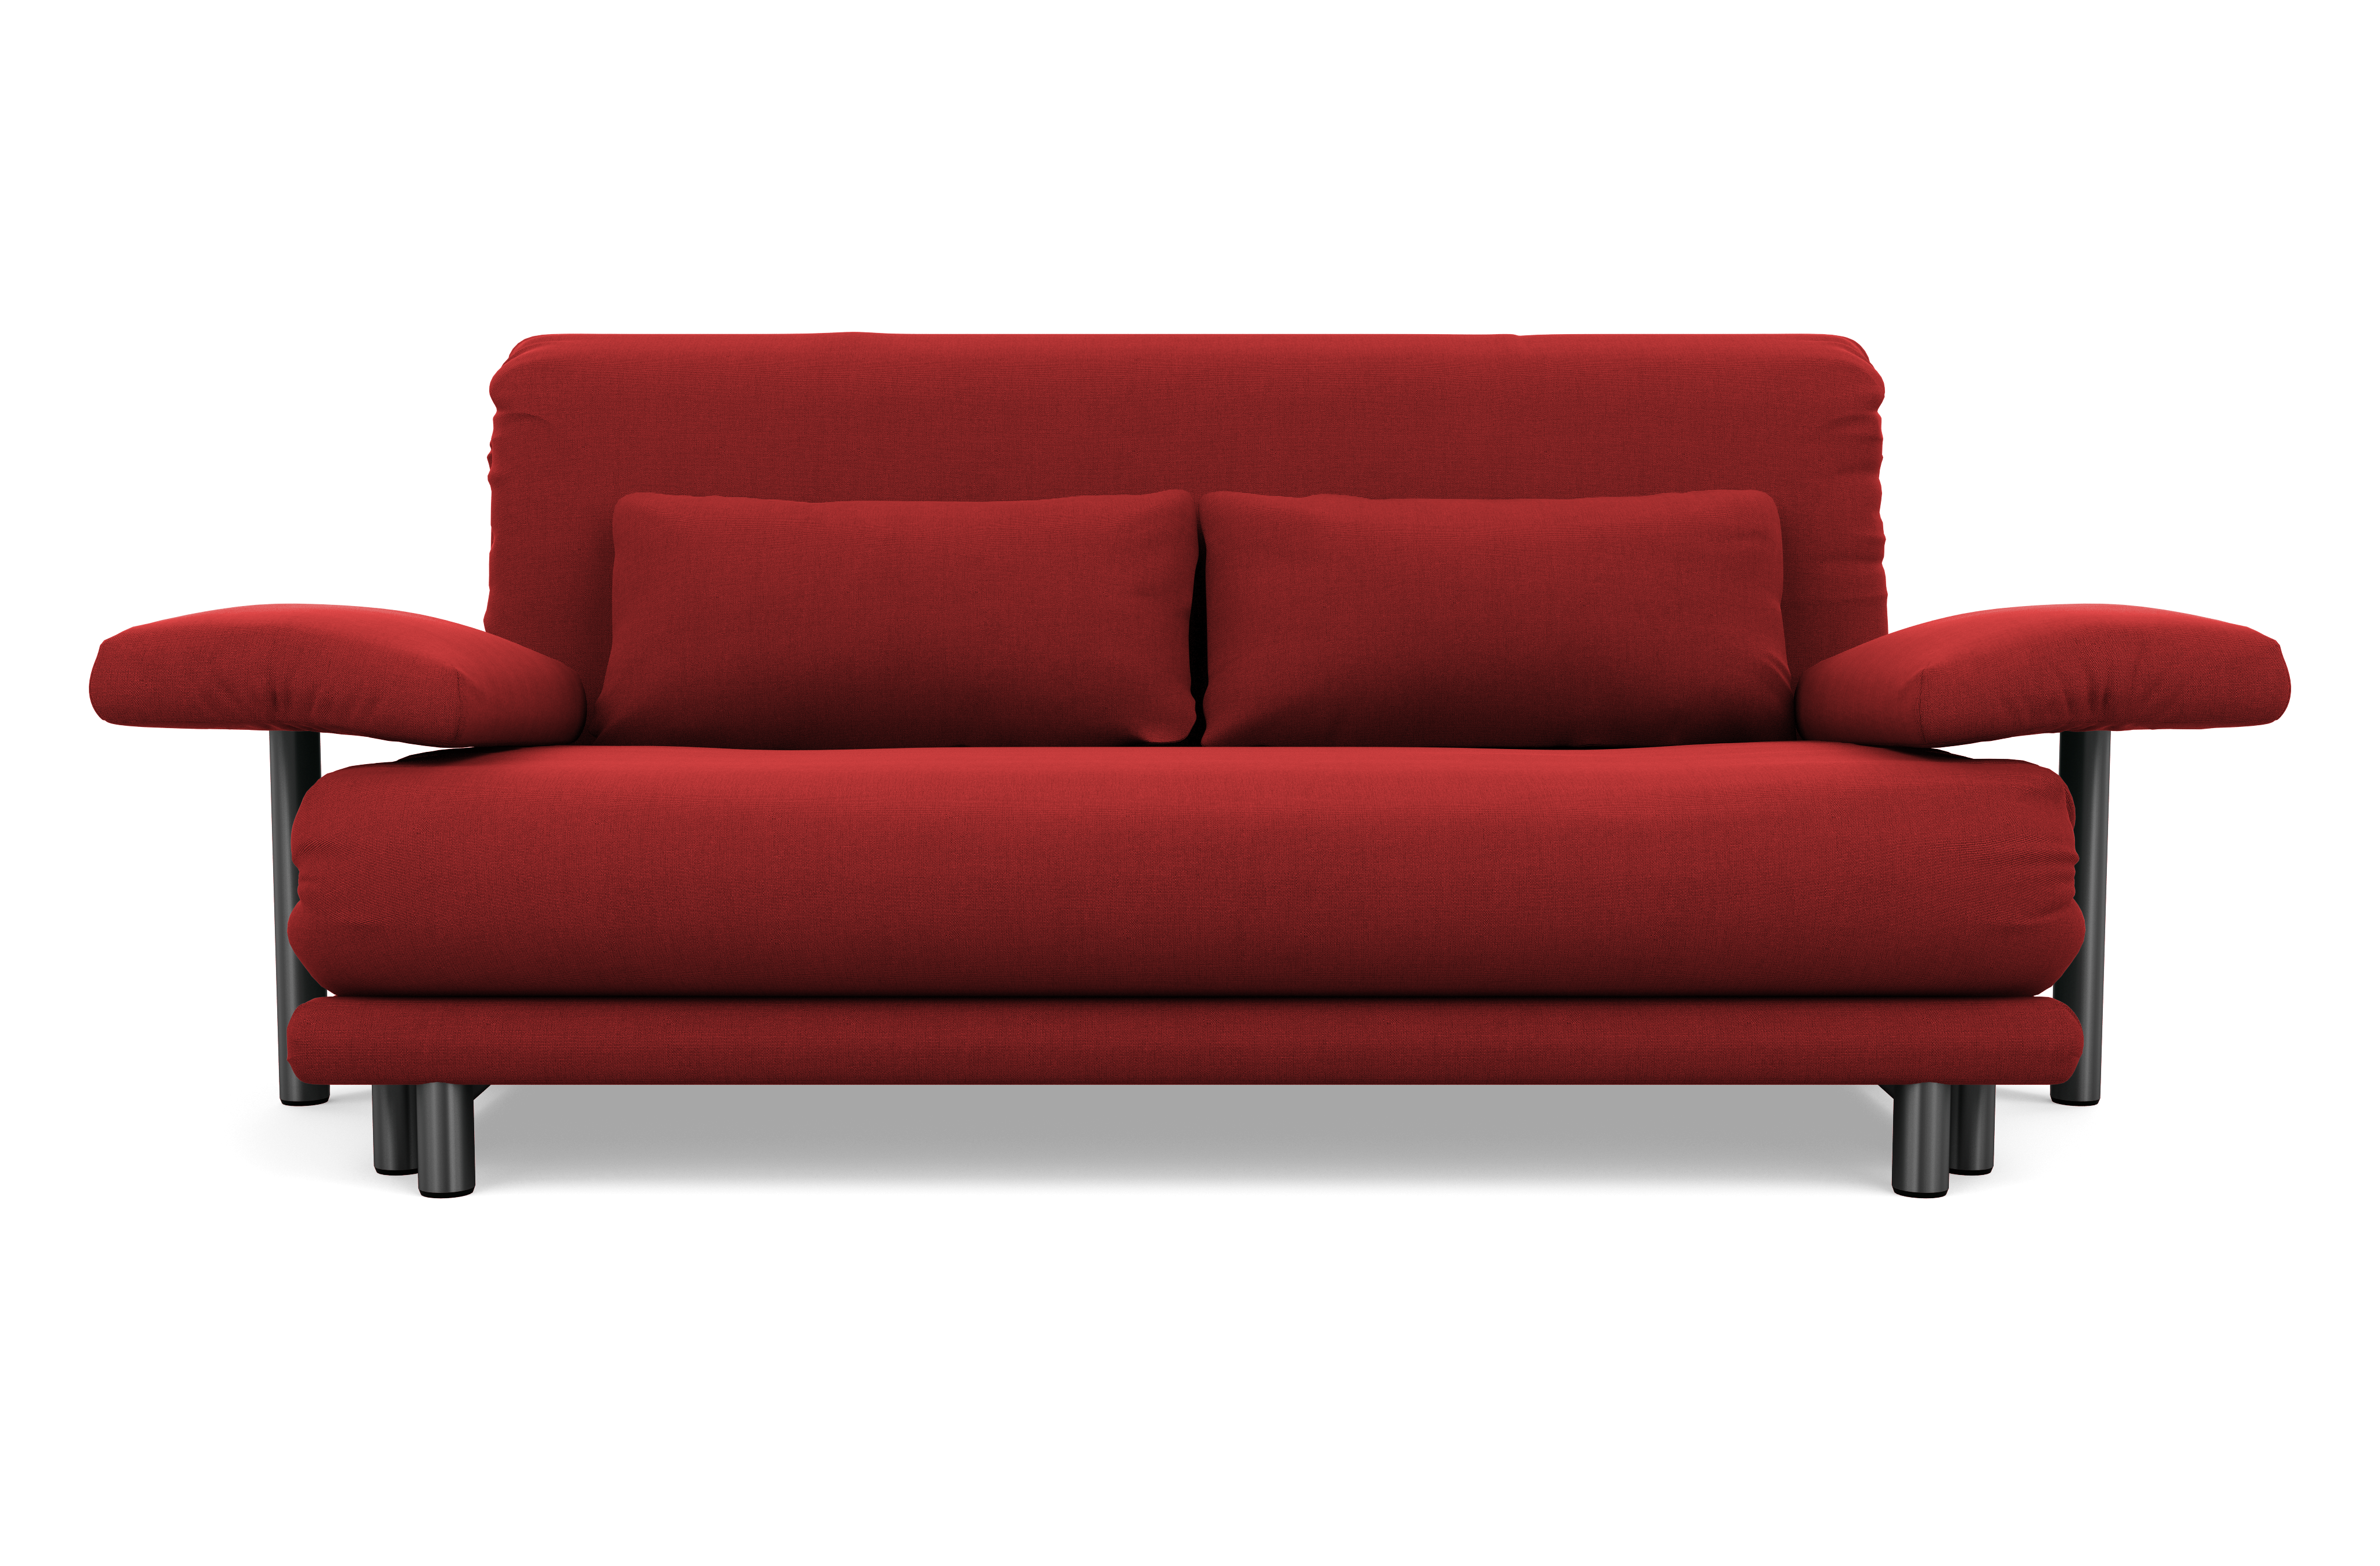 Pin By Amy Gulden On Home Love Schlafsofa Ligne Roset Sofa